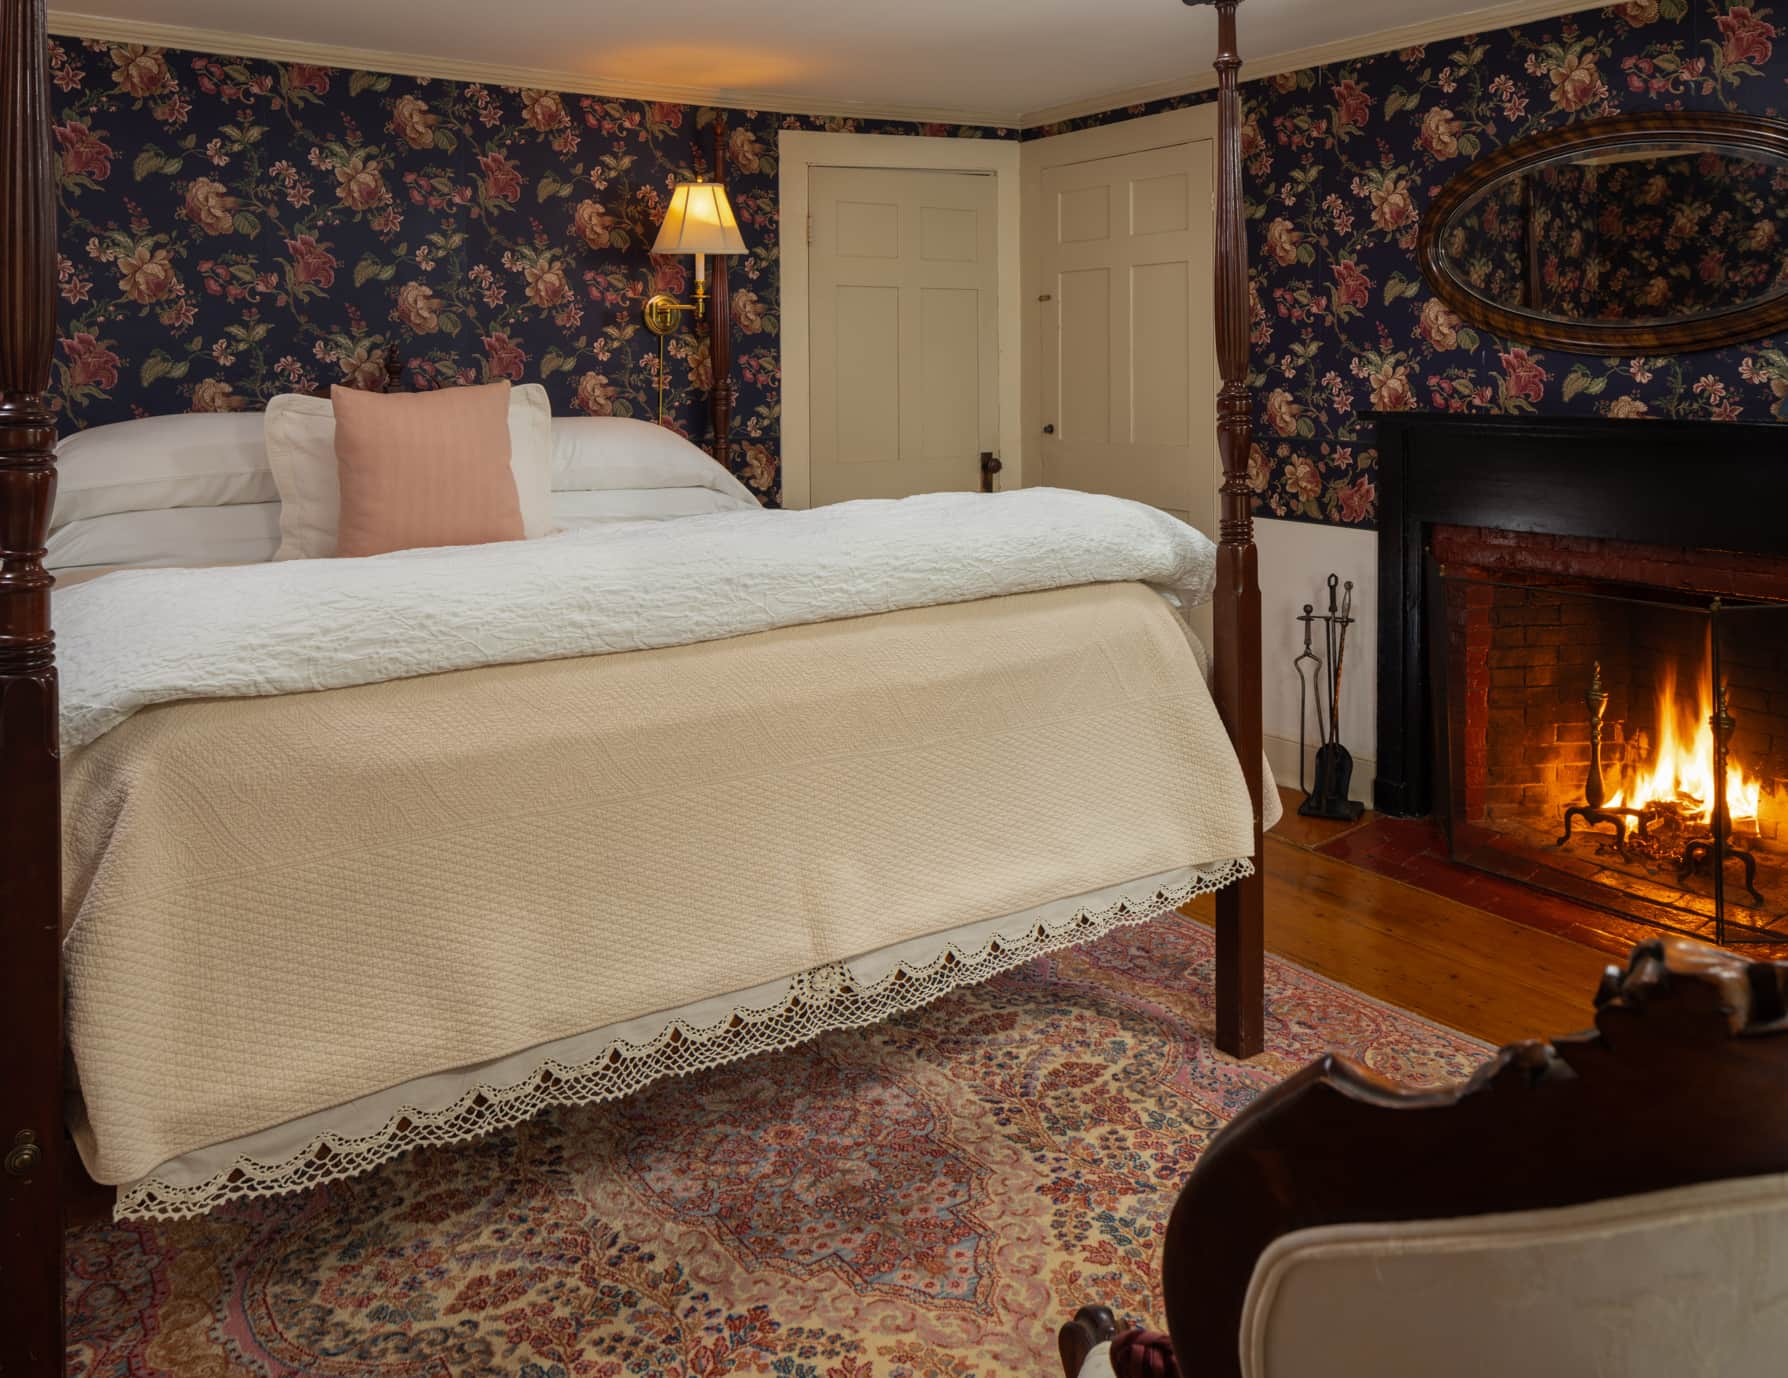 Room 4 with a King-size bed and fireplace with hardwood floors